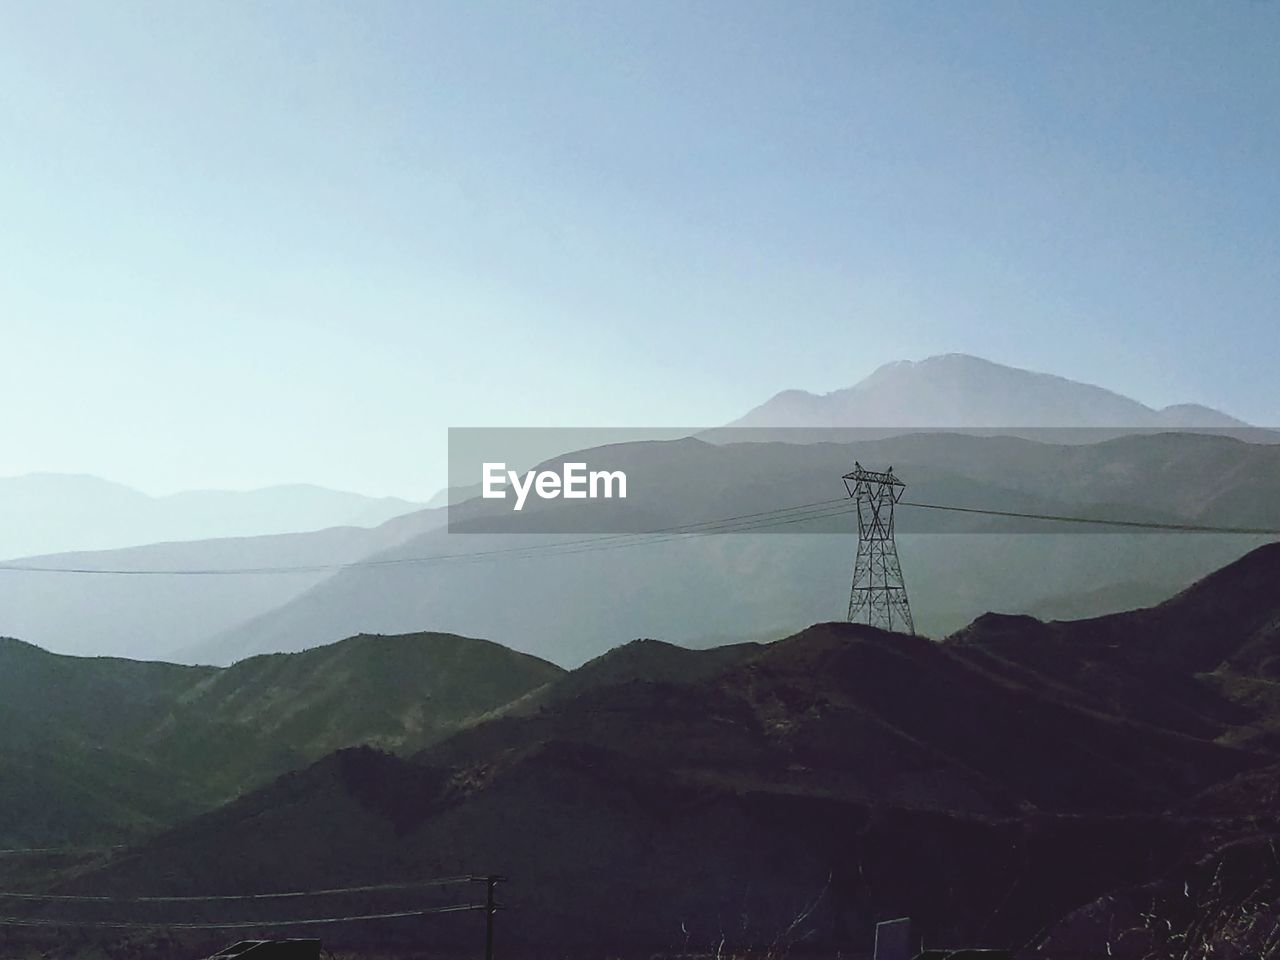 mountain, sky, mountain range, scenics - nature, beauty in nature, environment, tranquil scene, no people, tranquility, nature, copy space, landscape, non-urban scene, electricity, clear sky, cable, electricity pylon, day, outdoors, connection, mountain peak, power supply